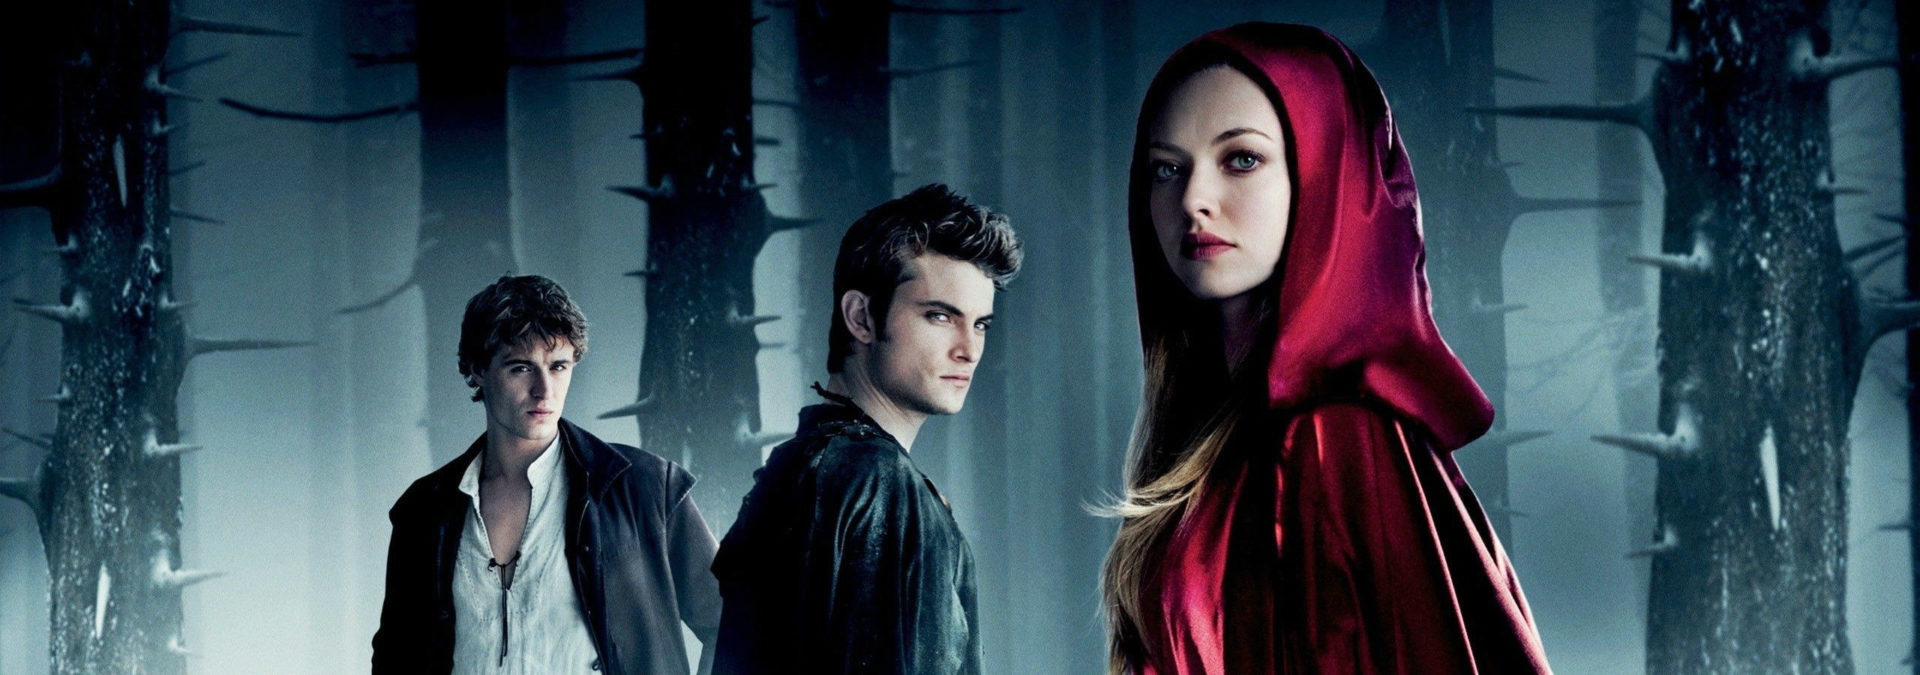 Red Riding Hood | Catherine Hardwicke | Beyond The Box Set Podcast